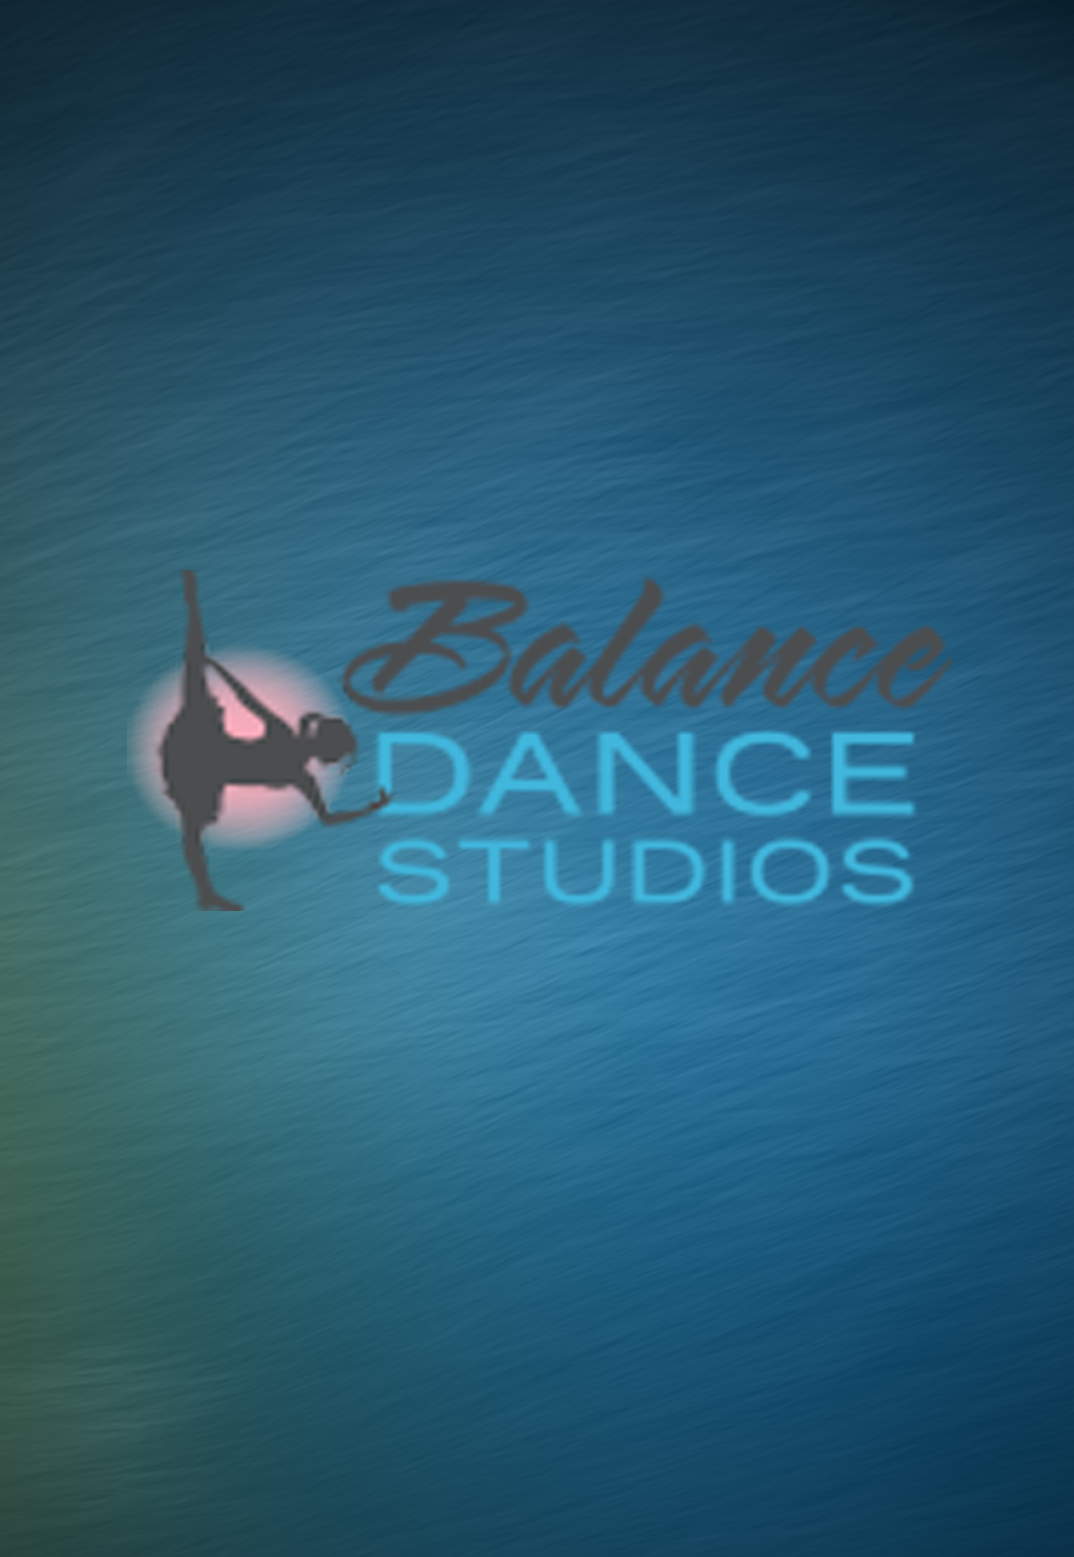 BALANCE DANCE STUDIO MAY 14, 2016 ANIMAL KINDOM RECITAL AND ANY 1 ACT OF RECITAL